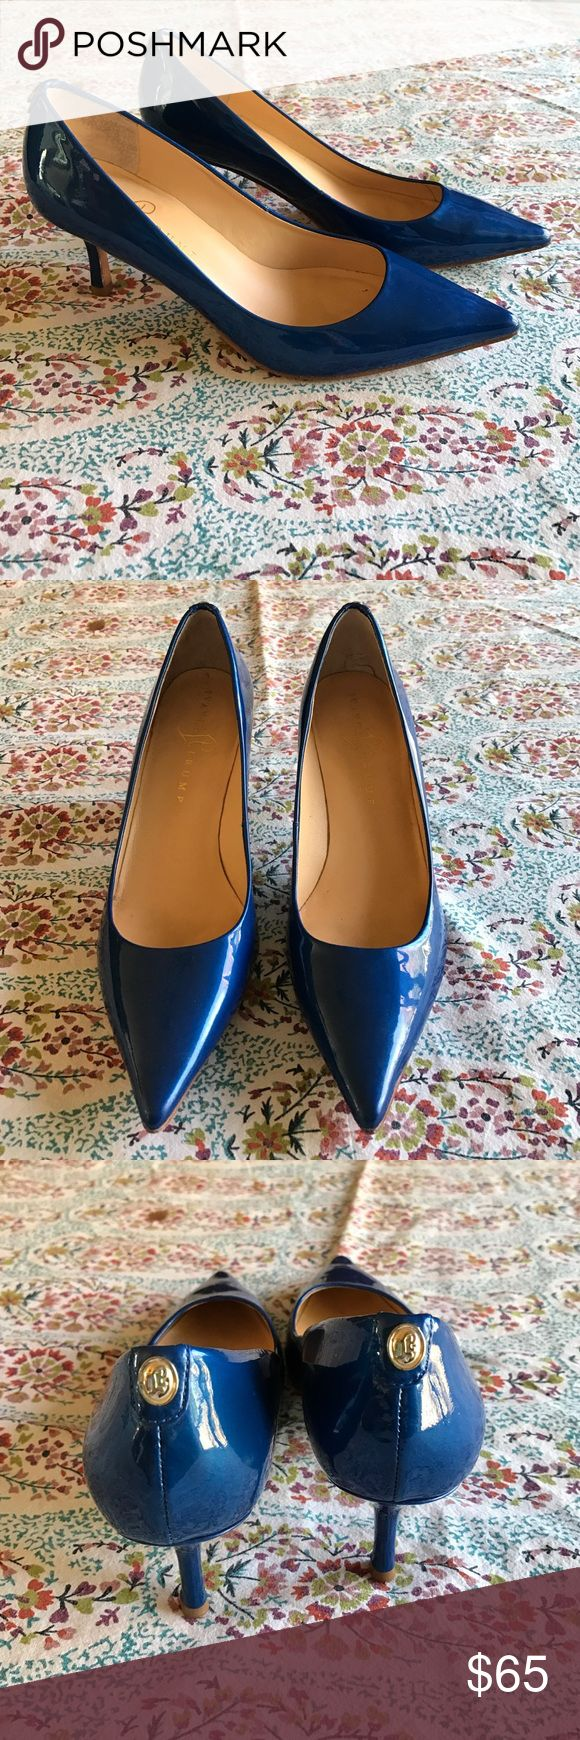 Stunning Ivanka Trump heels Pure class and sass! These patent leather Ivanka Trump heels are show stoppers! Gorgeous electric blue with gold emblem on top of back heel. Leather soles. Perfect heel height of 2 3/4. These are sure to get some attention! ❤️ Ivanka Trump Shoes Heels